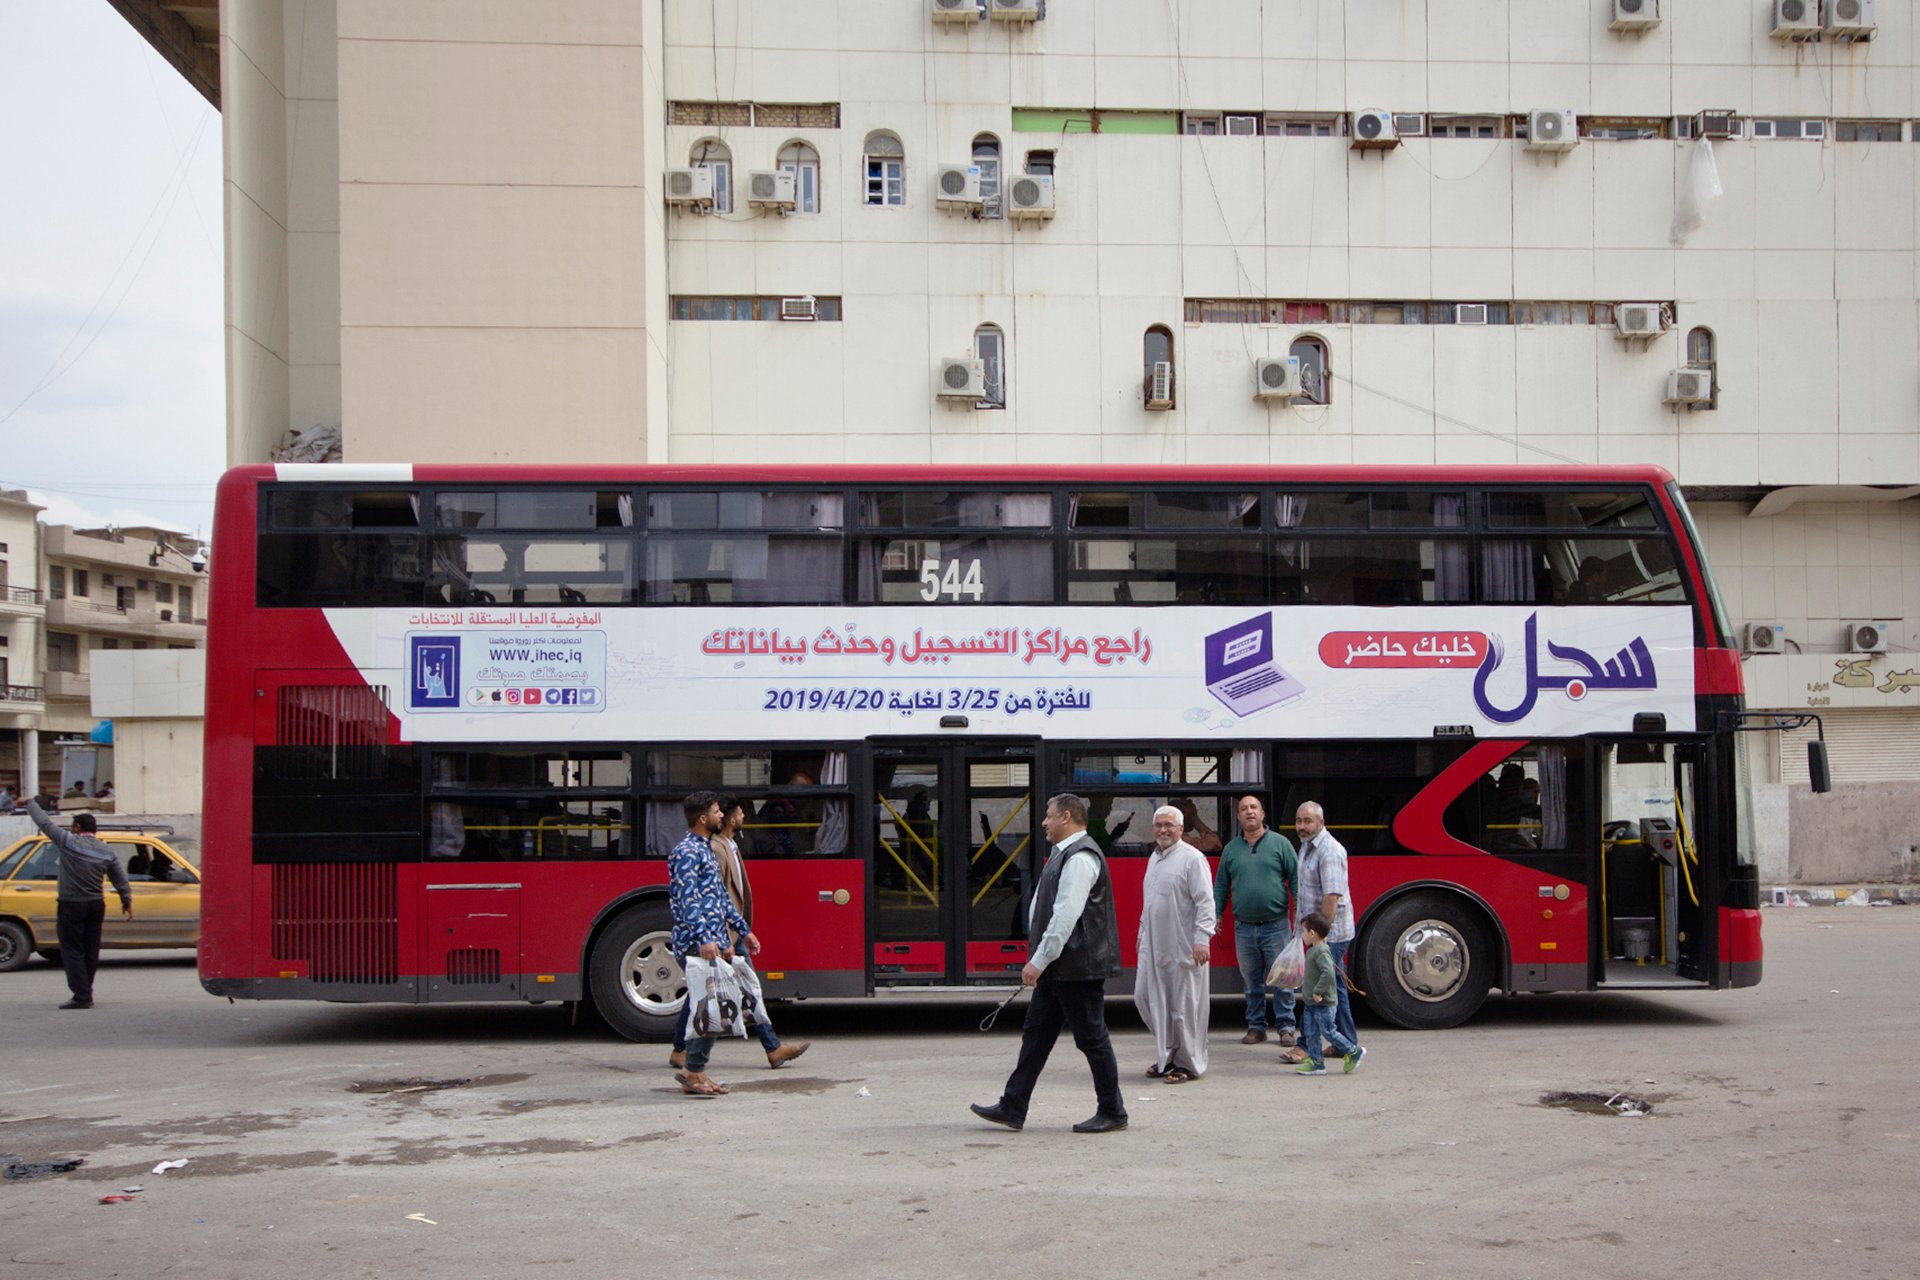 For decades, Baghdad's public transport of choice has been the red double-decker (MEE/Charlotte Mayhew)